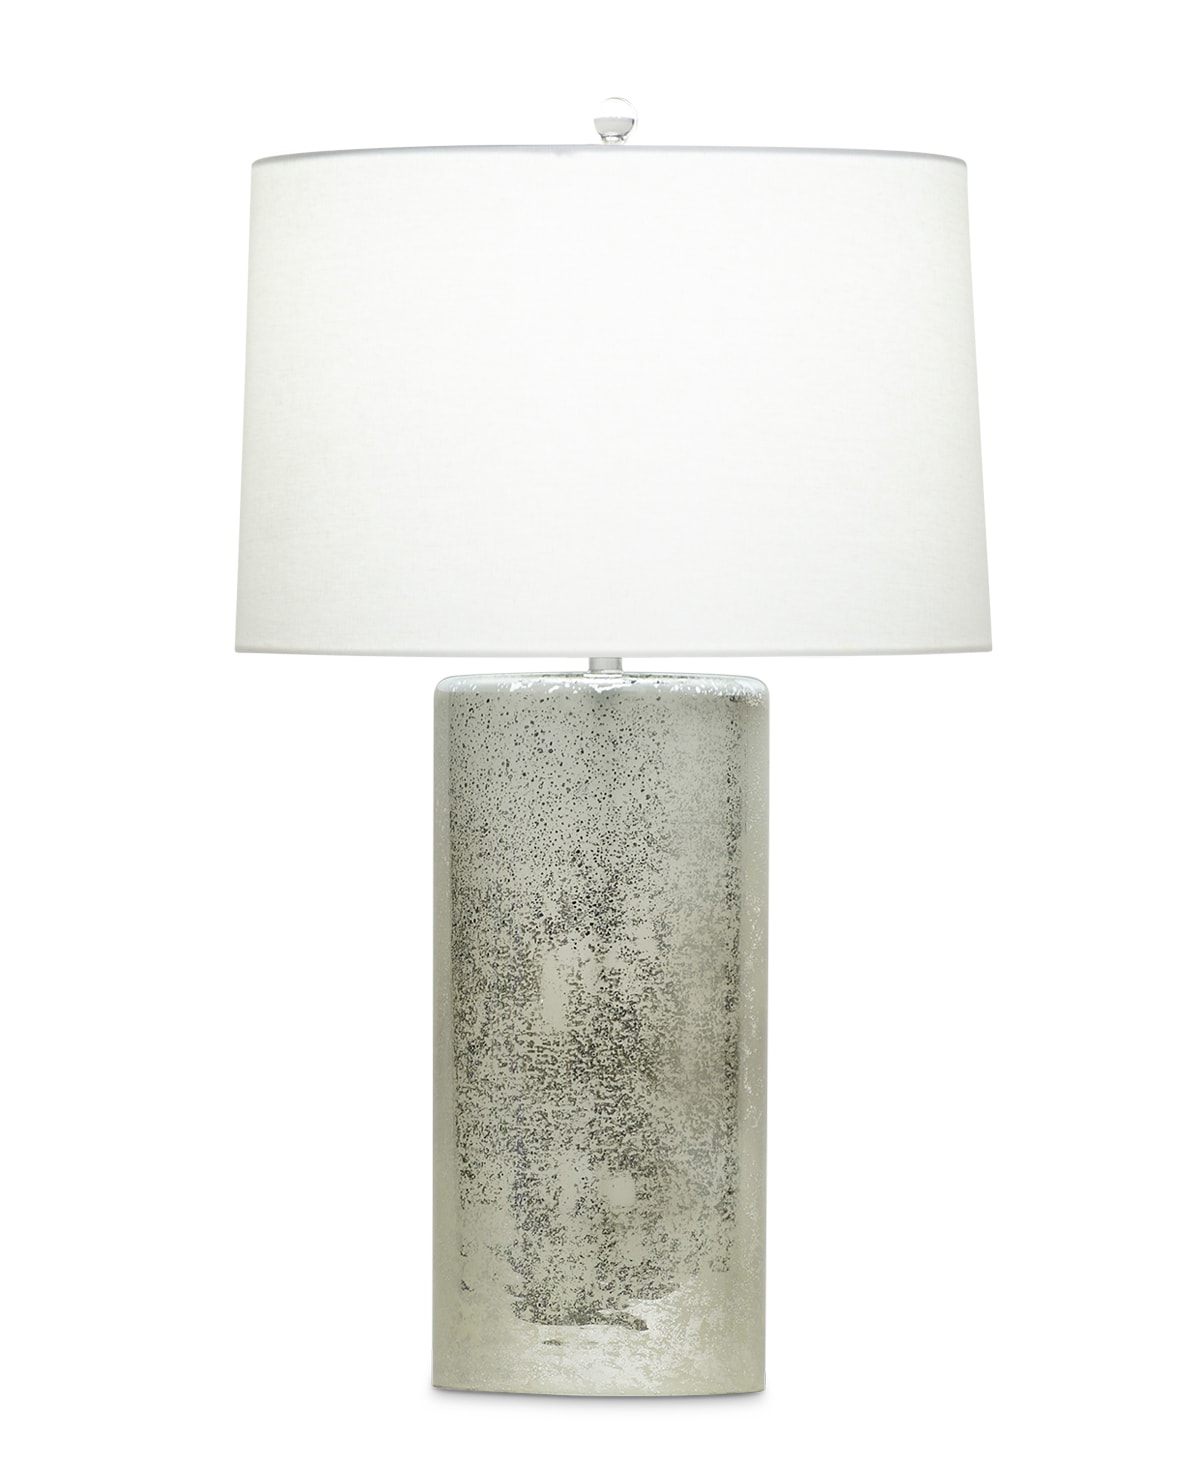 FlowDecor Aquarius Table Lamp in mouth-blown glass with silver rain finish and off-white linen tapered drum shade (# 3556)